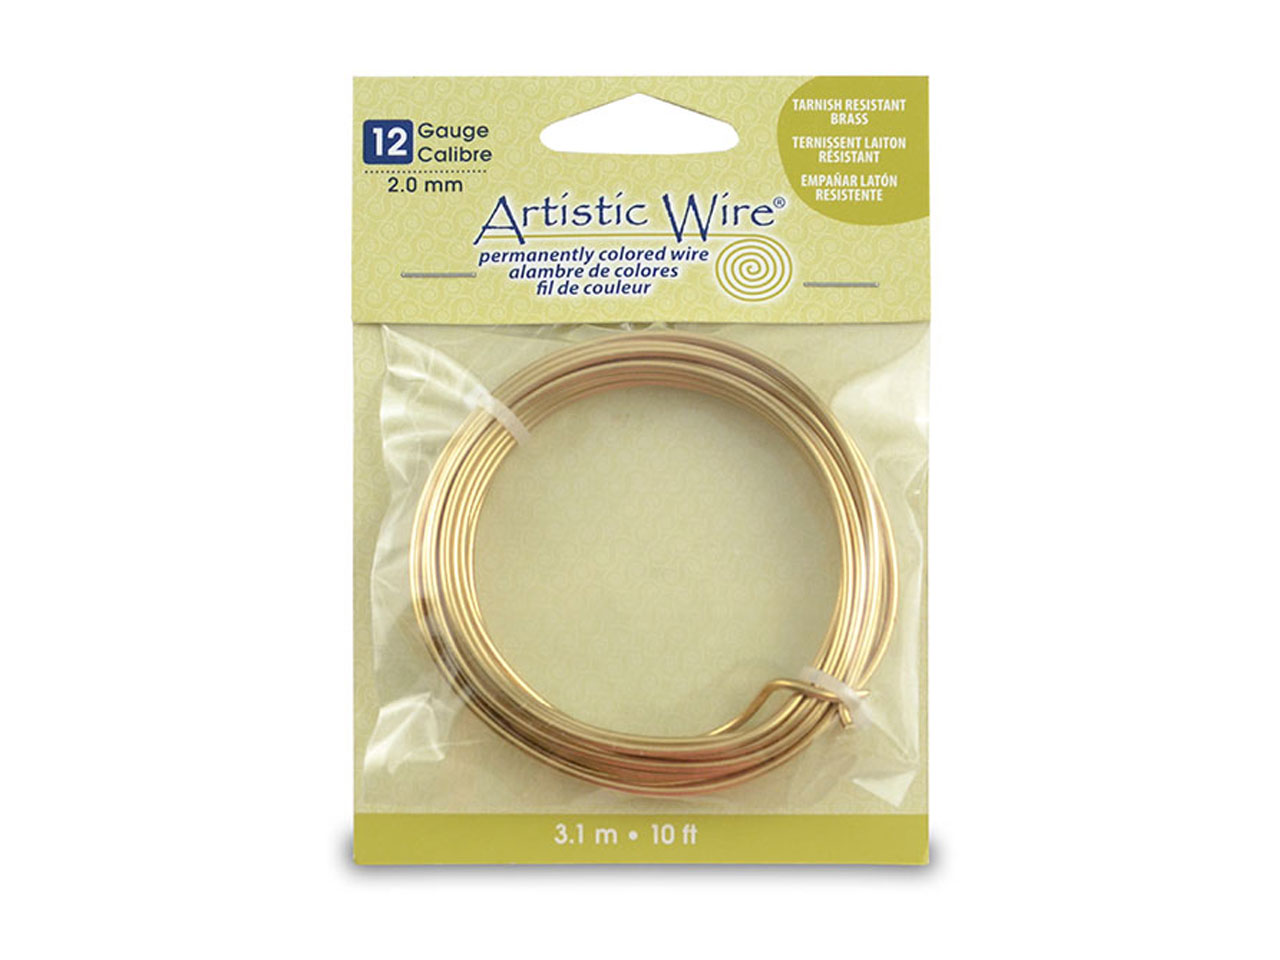 Beadalon Artistic Wire 12 Gauge    Tarnish Resistant Brass 3.1m